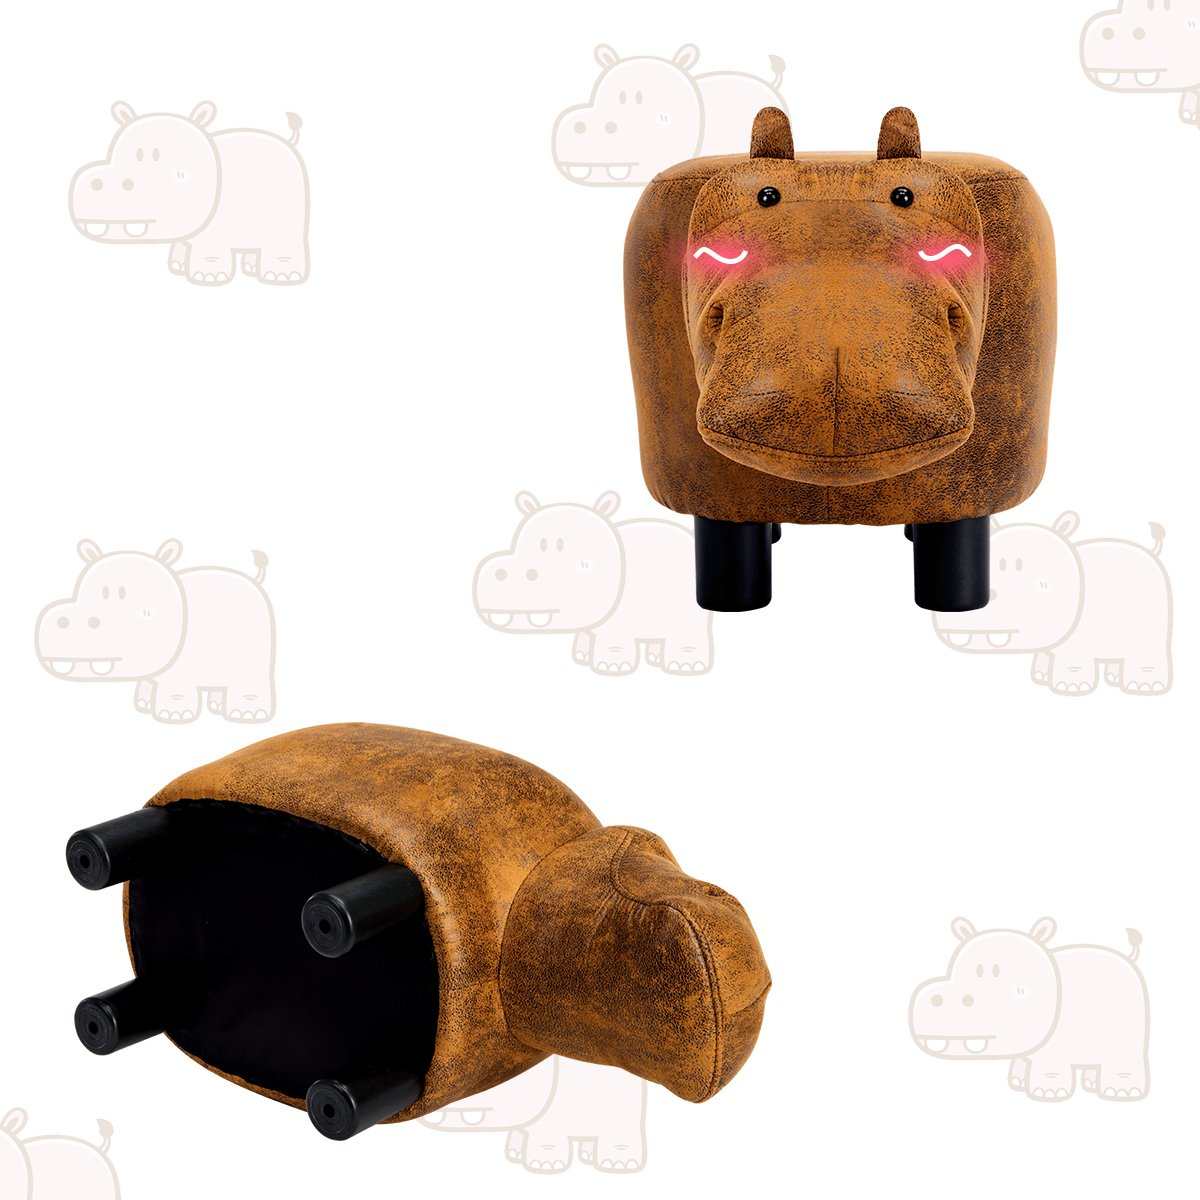 Guteen Upholstered Ride-on Toy Seat Ottoman Footrest Stool with Vivid Adorable Animal-Like Features(Brown Hippo) by GUTEEN (Image #6)